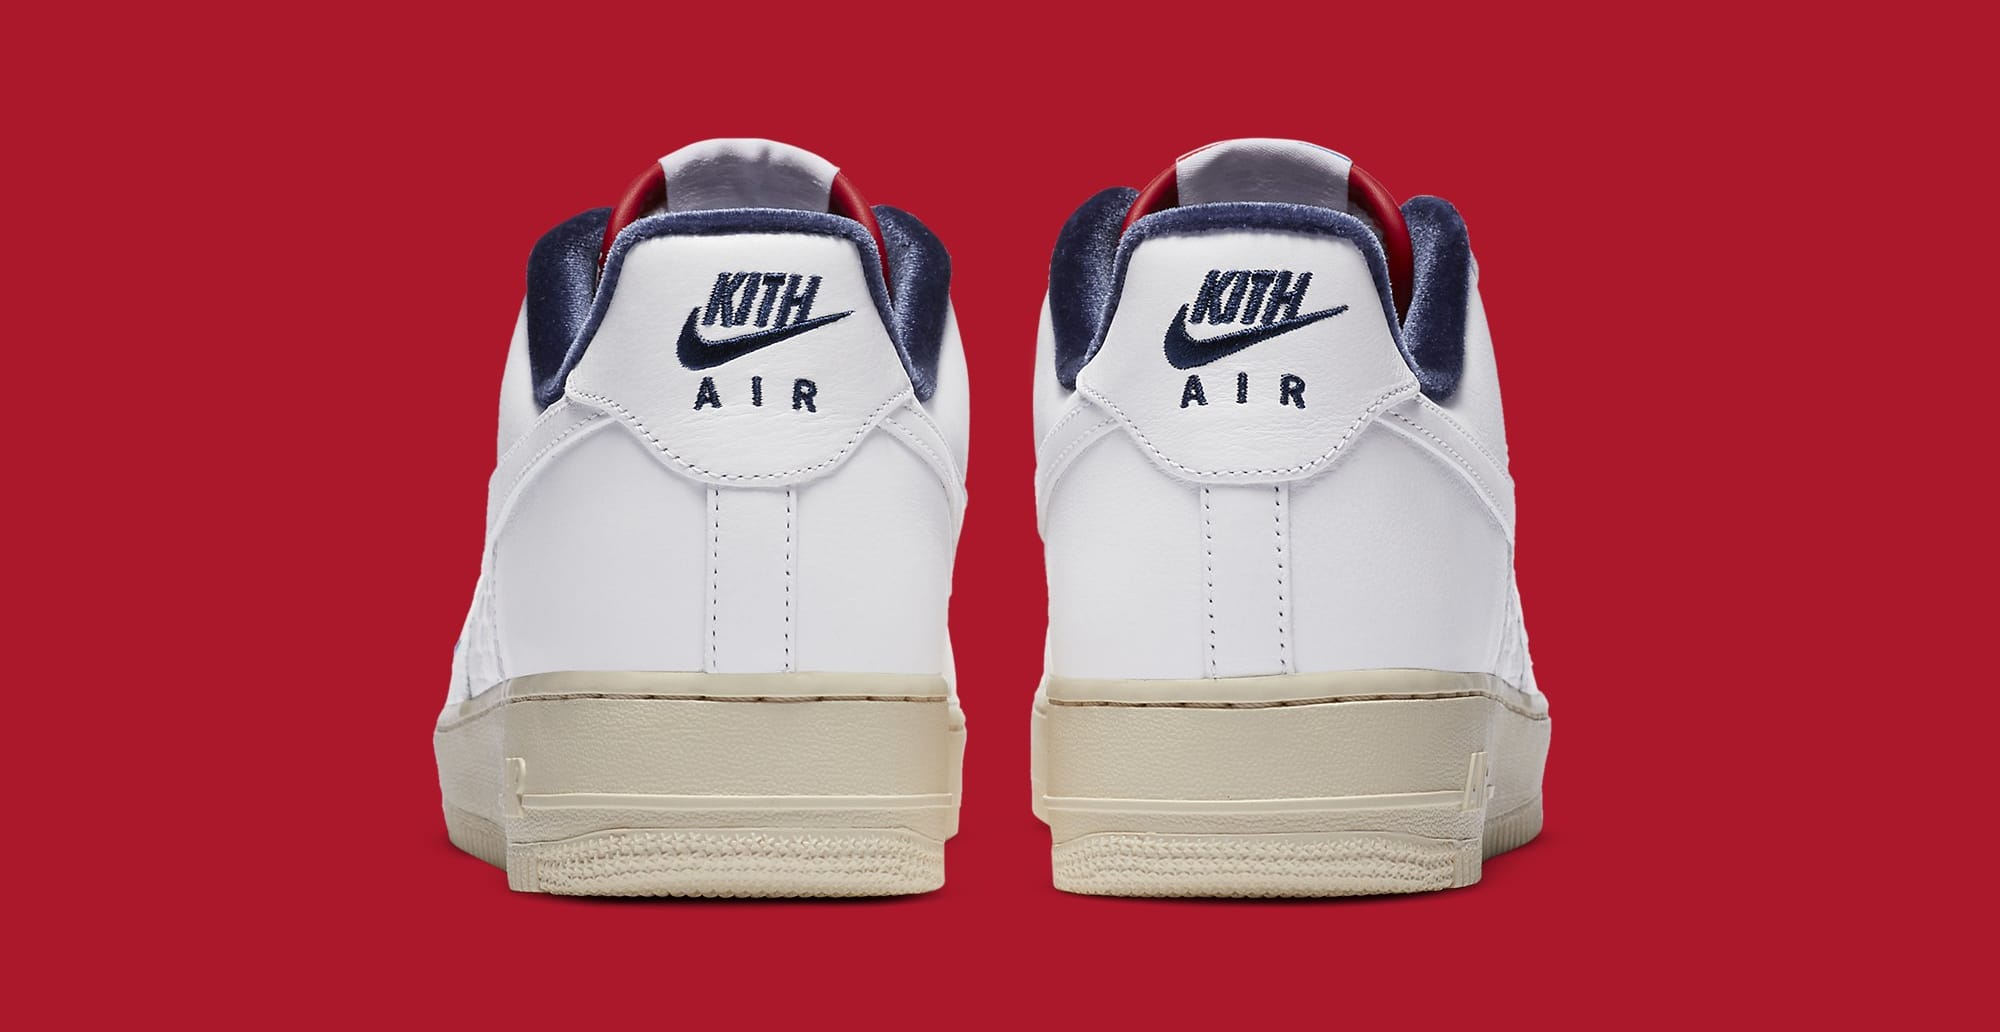 Kith x Nike Air Force 1 Low CZ7927-100 Heel